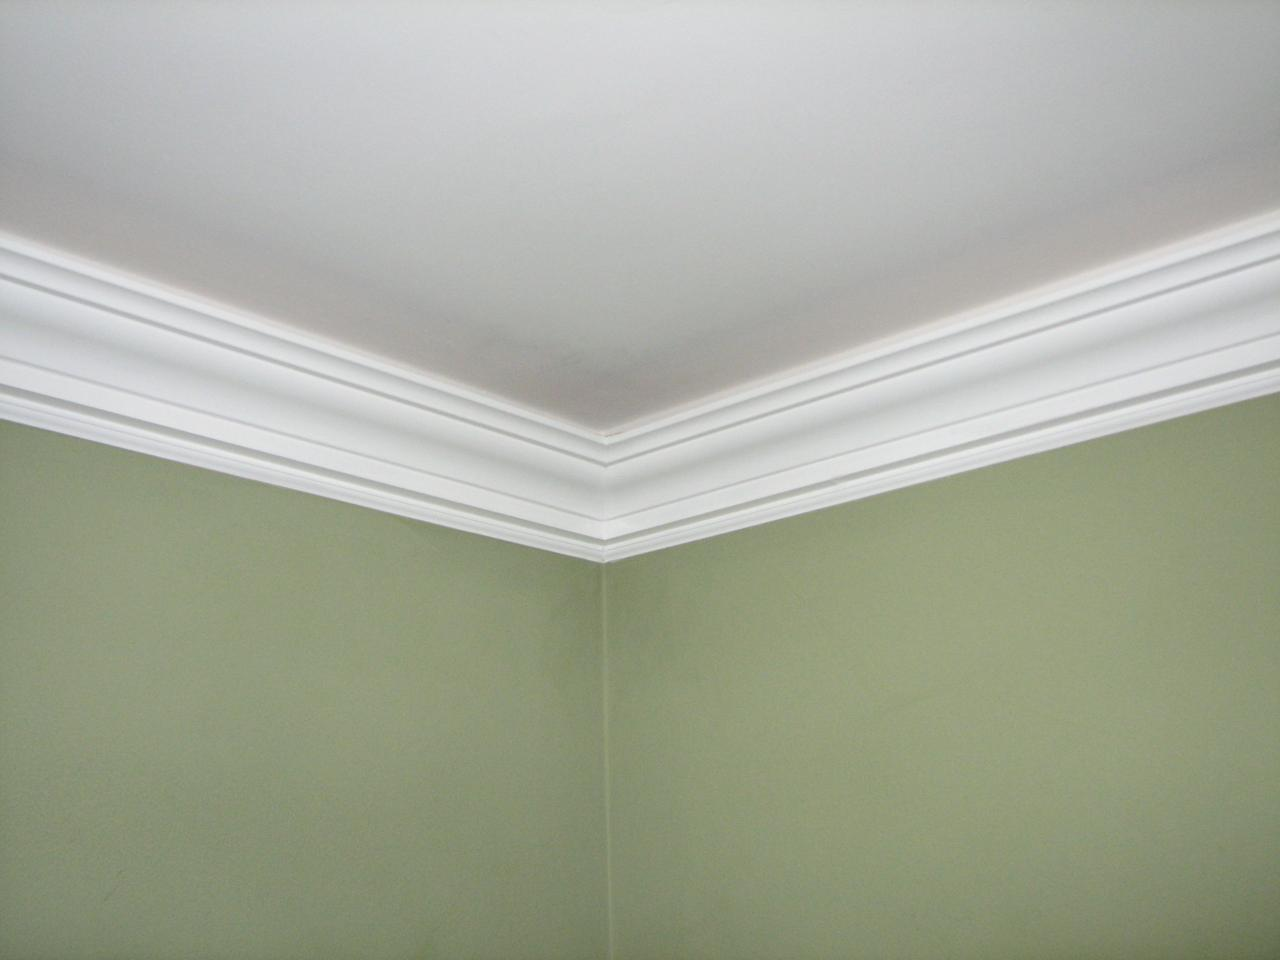 Crown moulding be equipped thick floor molding be equipped crown molding edges be equipped mold on interior walls